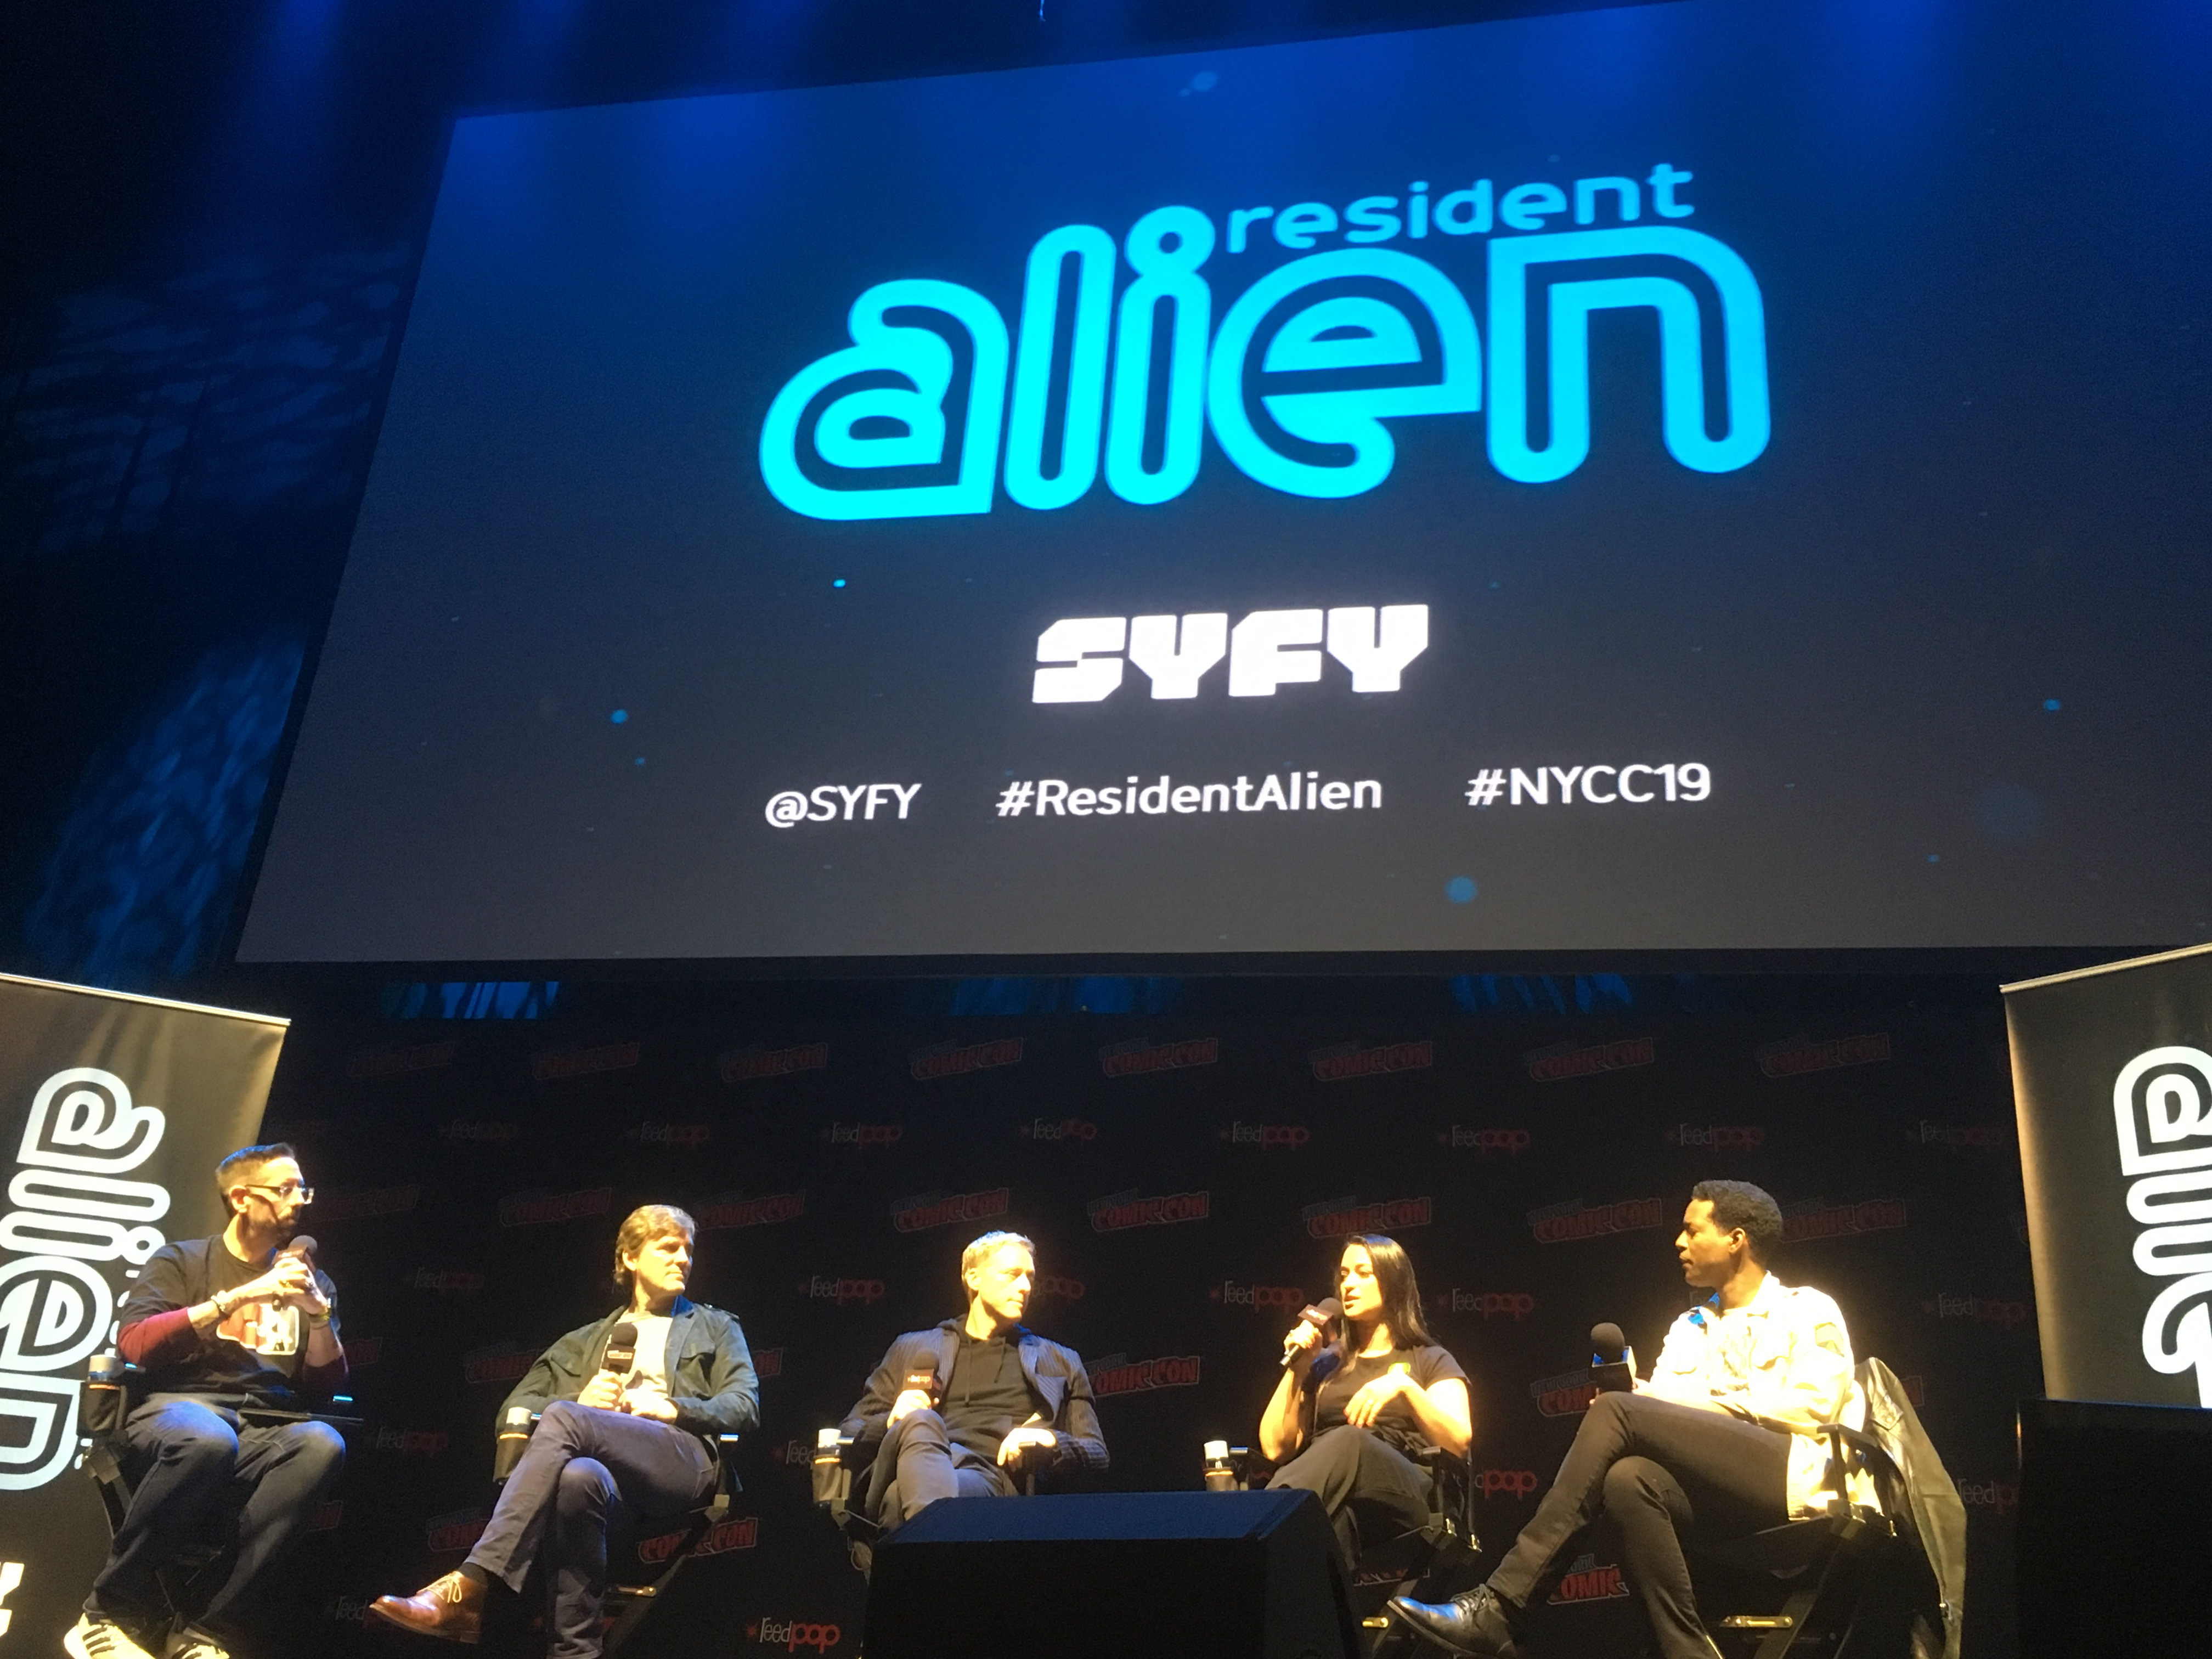 NYCC '19: Alan Tudyk finds a new space ship to crash in SYFY's 'Resident Alien'